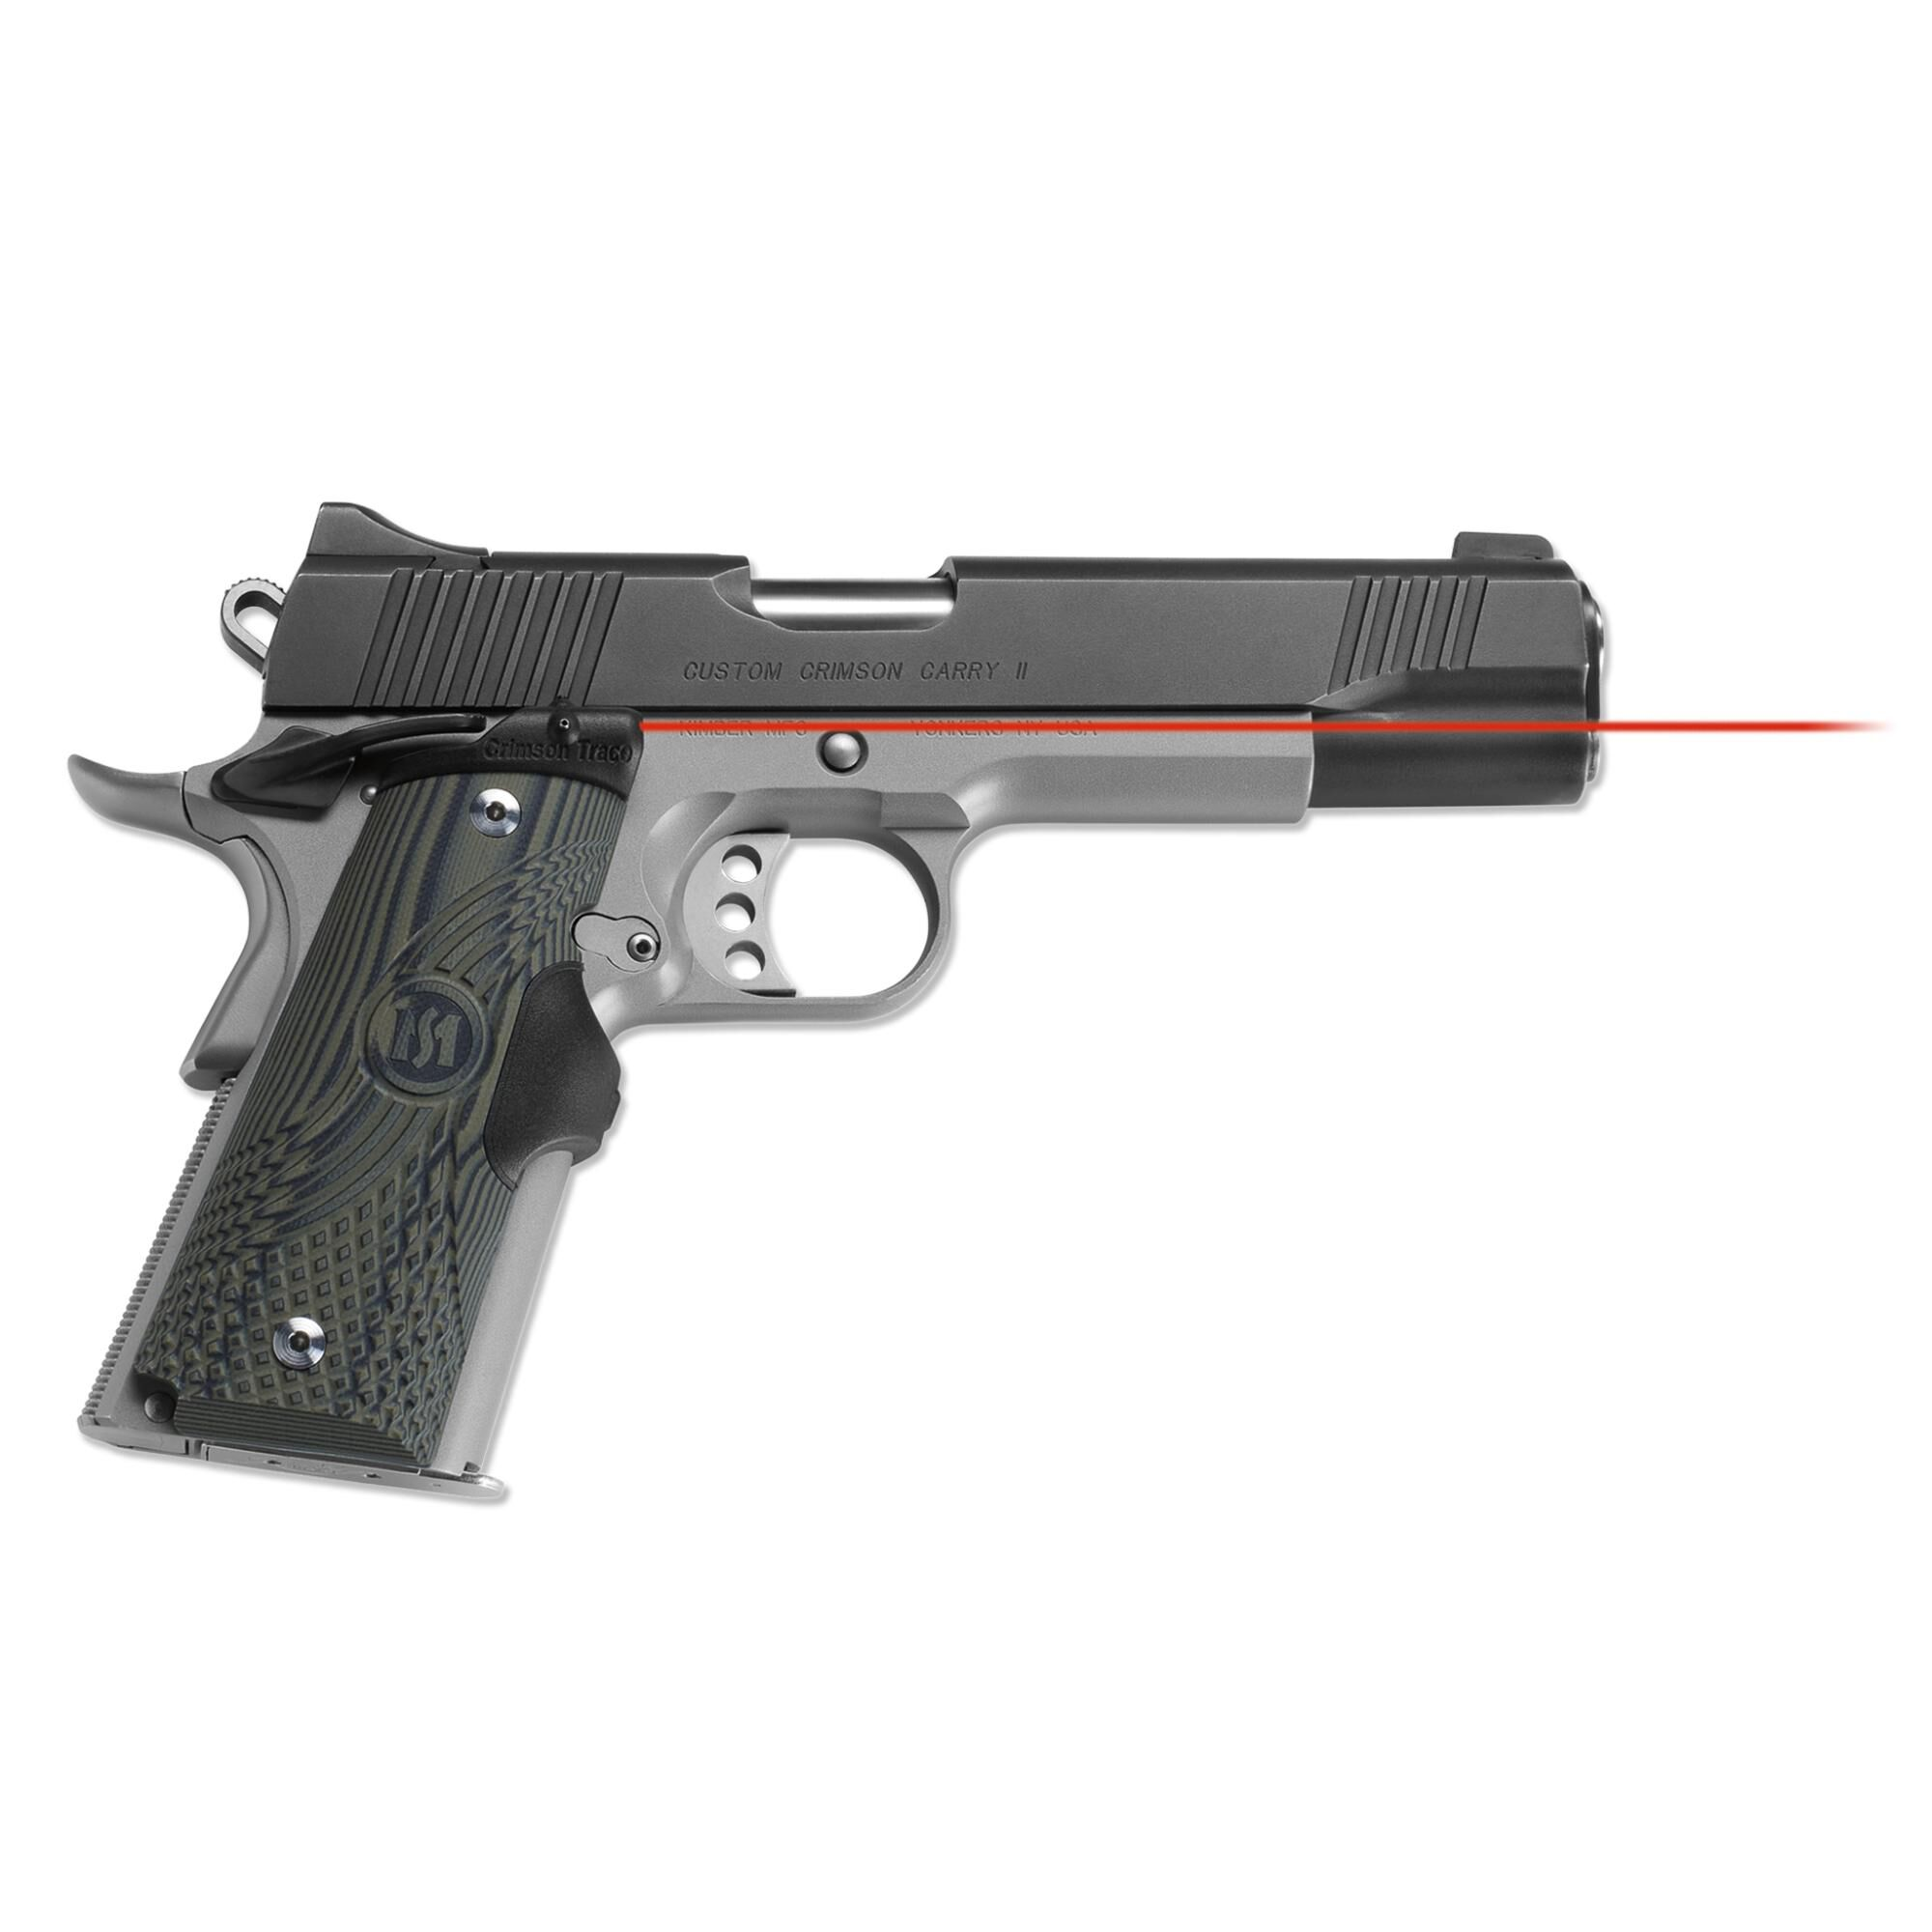 LG-910 Master Series™ Lasergrips® G10 Green for 1911 Full ...